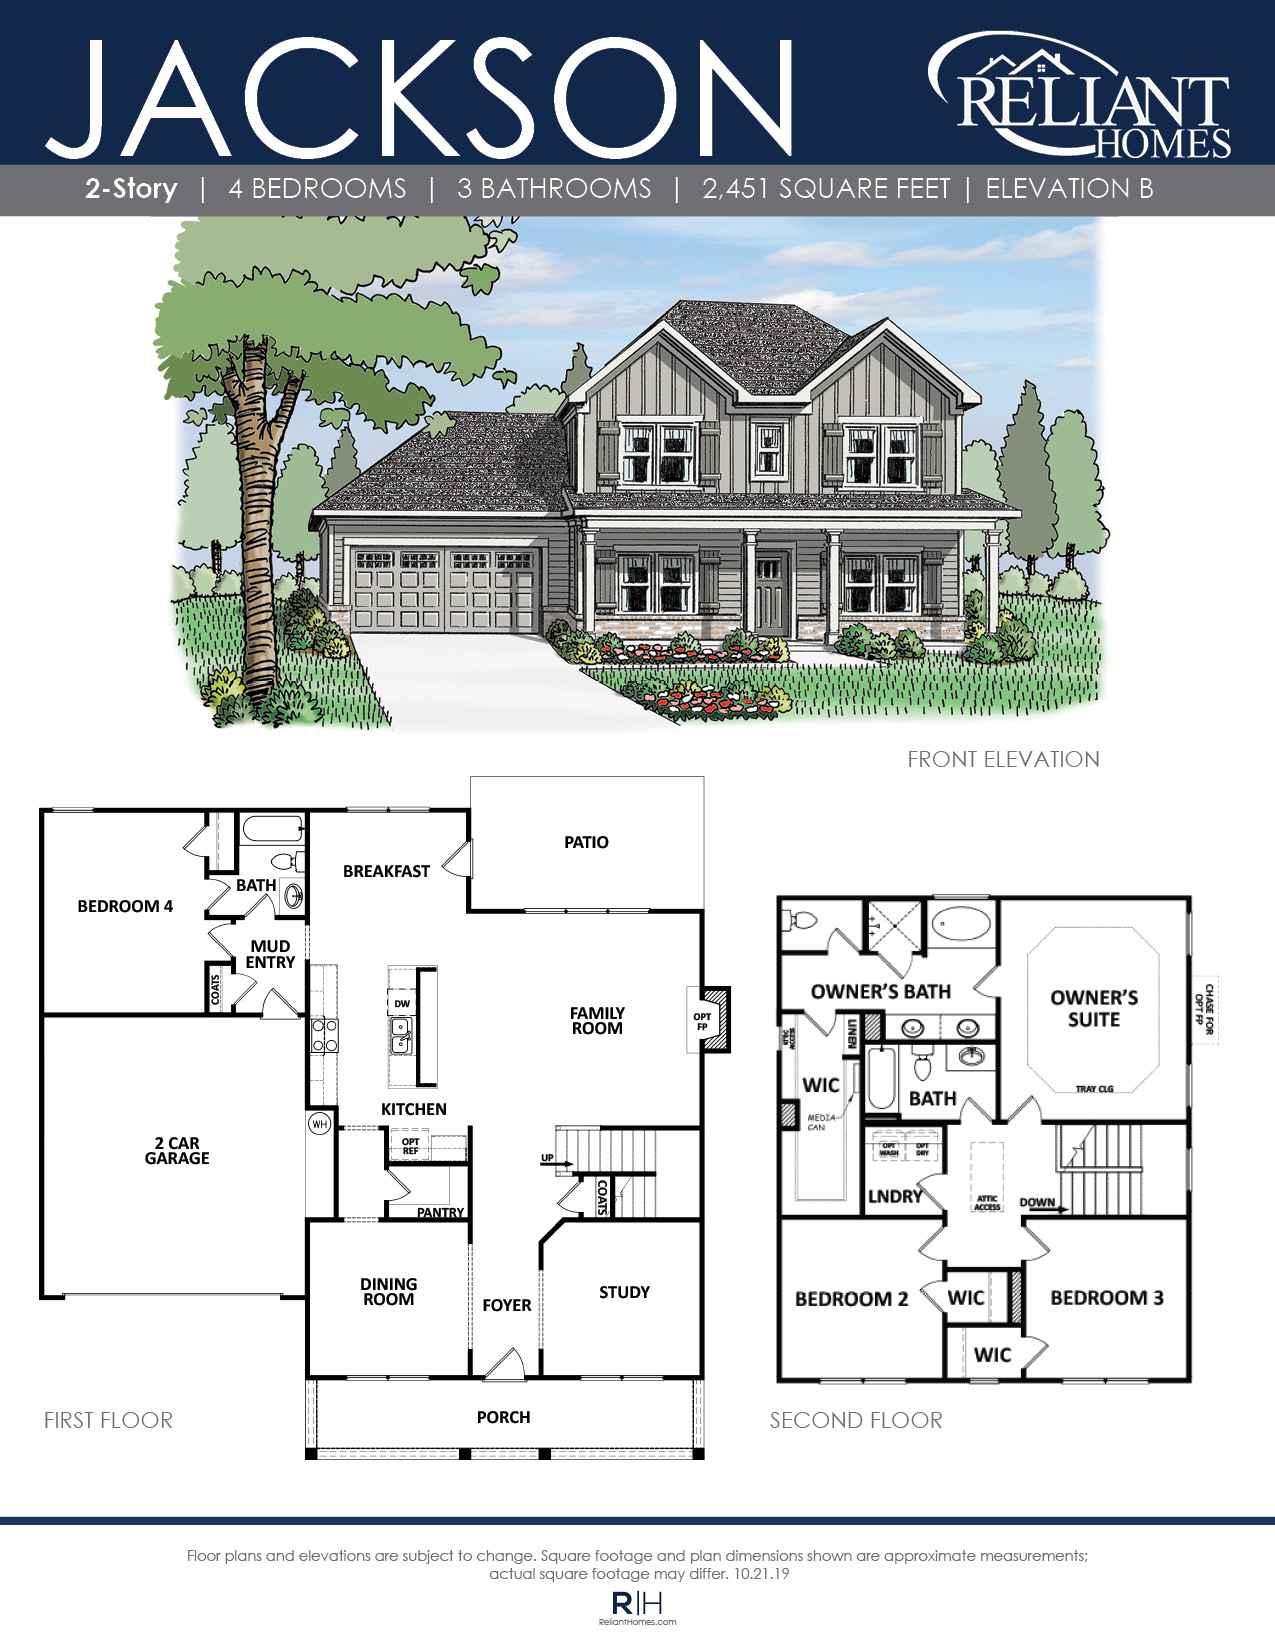 The Jackson   Front Entry Floor Plan   Reliant Homes on basic 4 bedroom house plans, 4 bedroom 4 bath house plans, two bedroom 2 bath house plans, bath house floor plans, florida 4 bedroom house plans, 4 br 3 bath house plans, 3 bedroom 1 bath plans, master bedroom addition floor home plans, 3 bedroom 2 story house plans, 4-bedroom family home plans, 3 bedroom 2 bath house plans, blueprint of a 4 bedroom 2 bath house plans, 3 bdrm house plans, new 4 bedroom home plans, sims 3 4 bedroom house plans, 7 bedroom 3 bath house plans, 3 br 2 bath house plans, two bed two bath house plans, 4 bedroom 4 bathroom house,